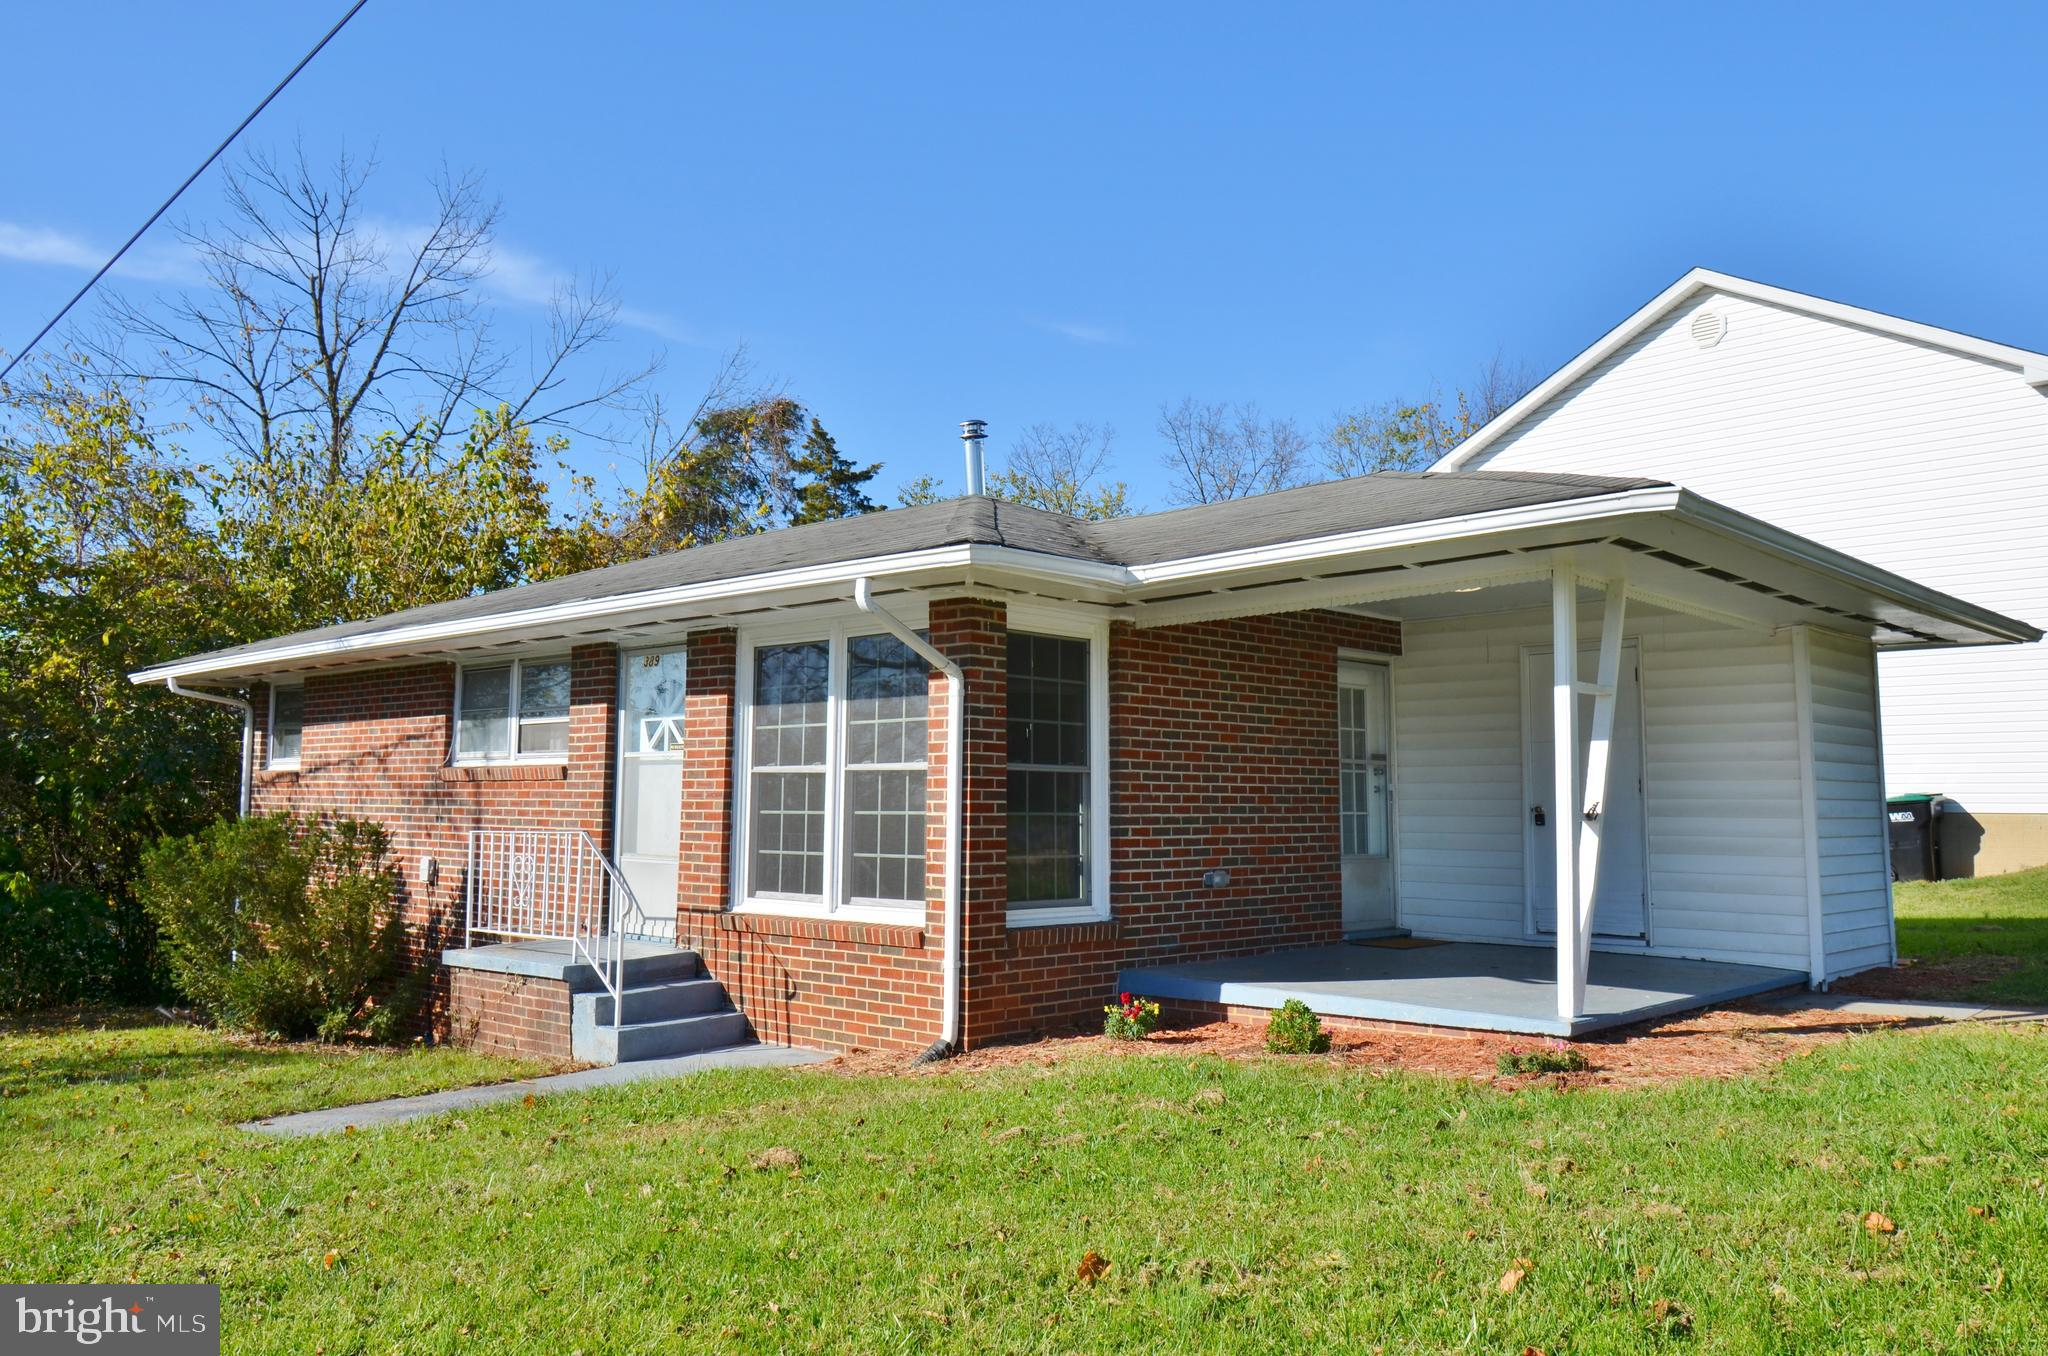 Delightful 3 bed mid century home in the heart of Strasburg! Great top of hill views and on a corner lot! Laundry room off of porch with washer and dryer.